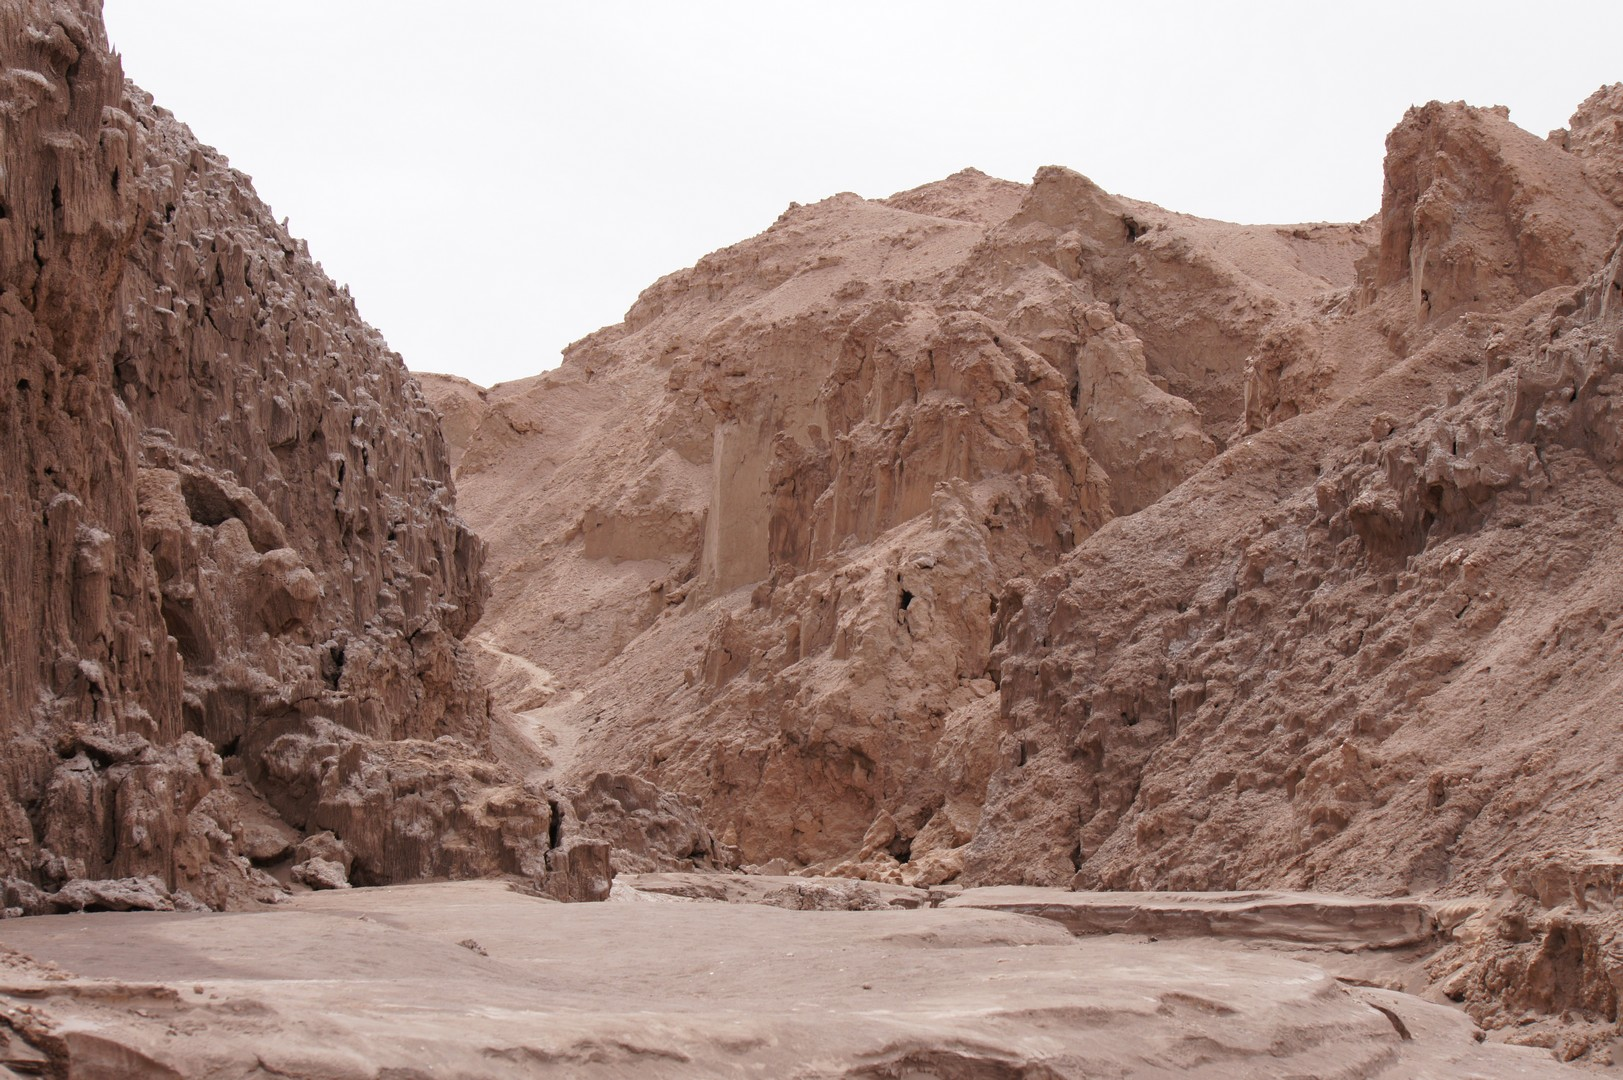 In Valle de la Luna